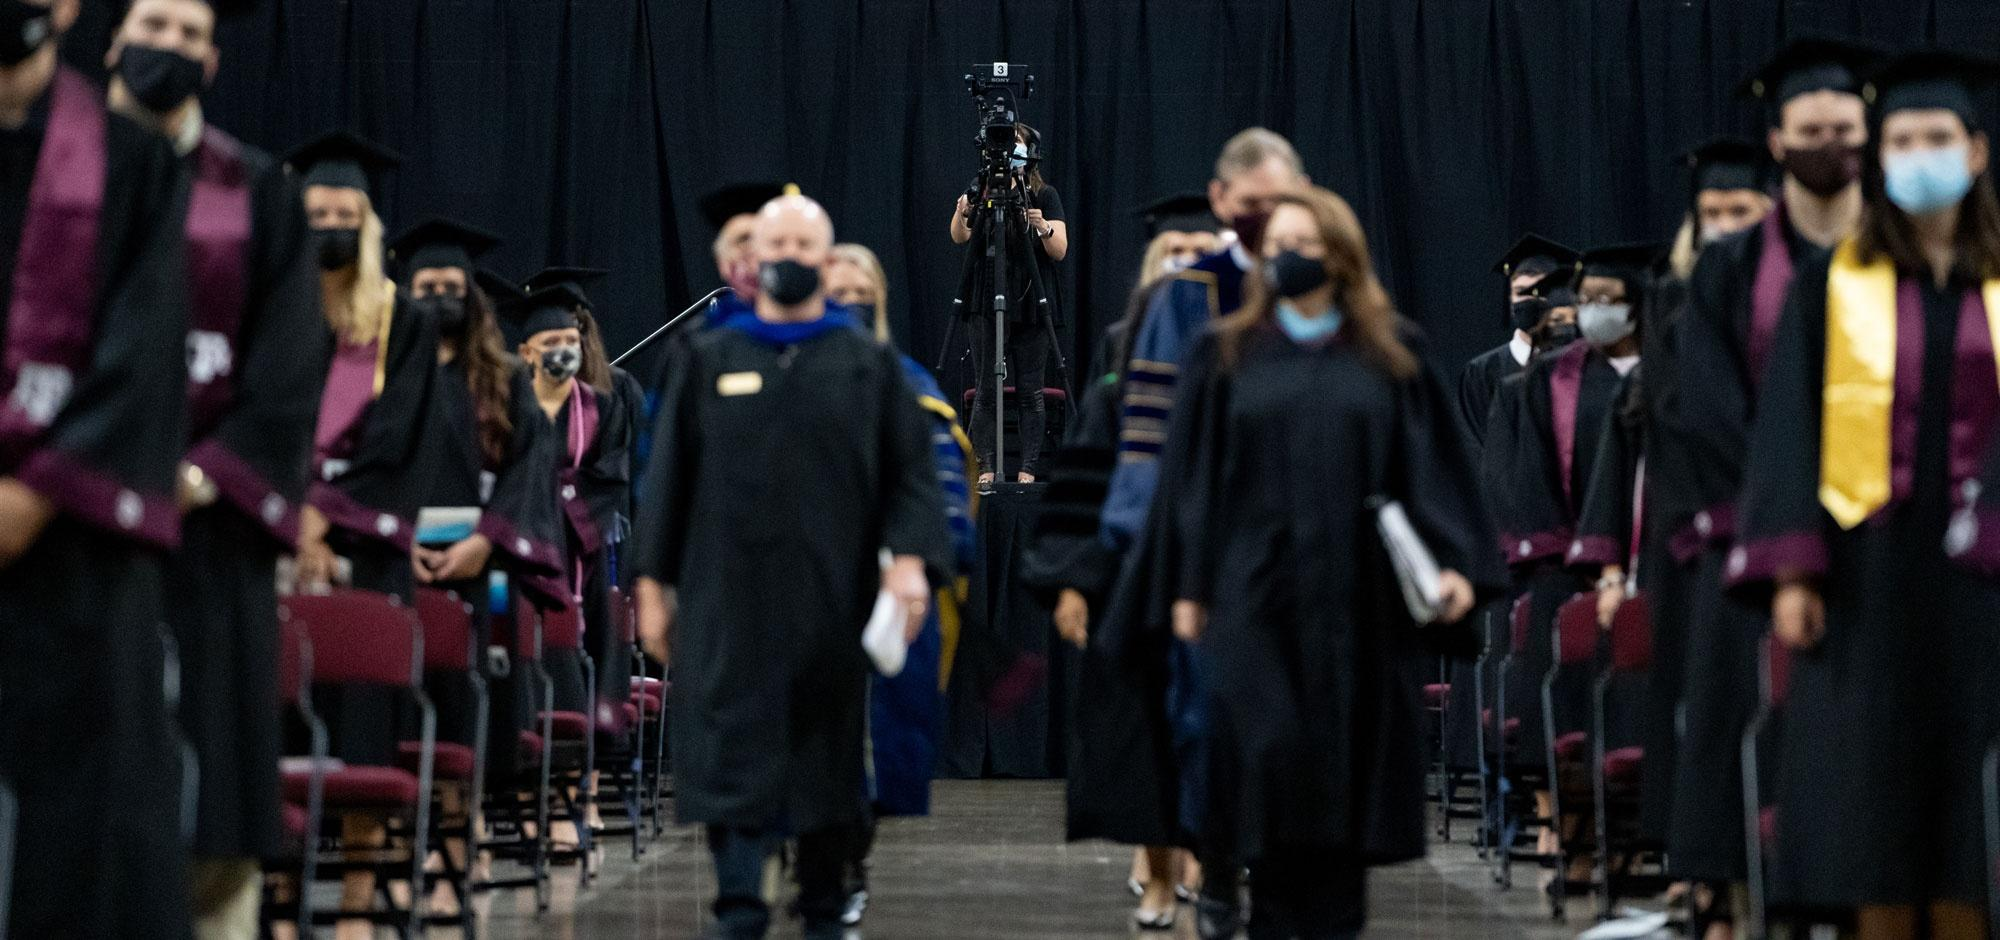 graduates walking down the aisle at the commencement ceremony